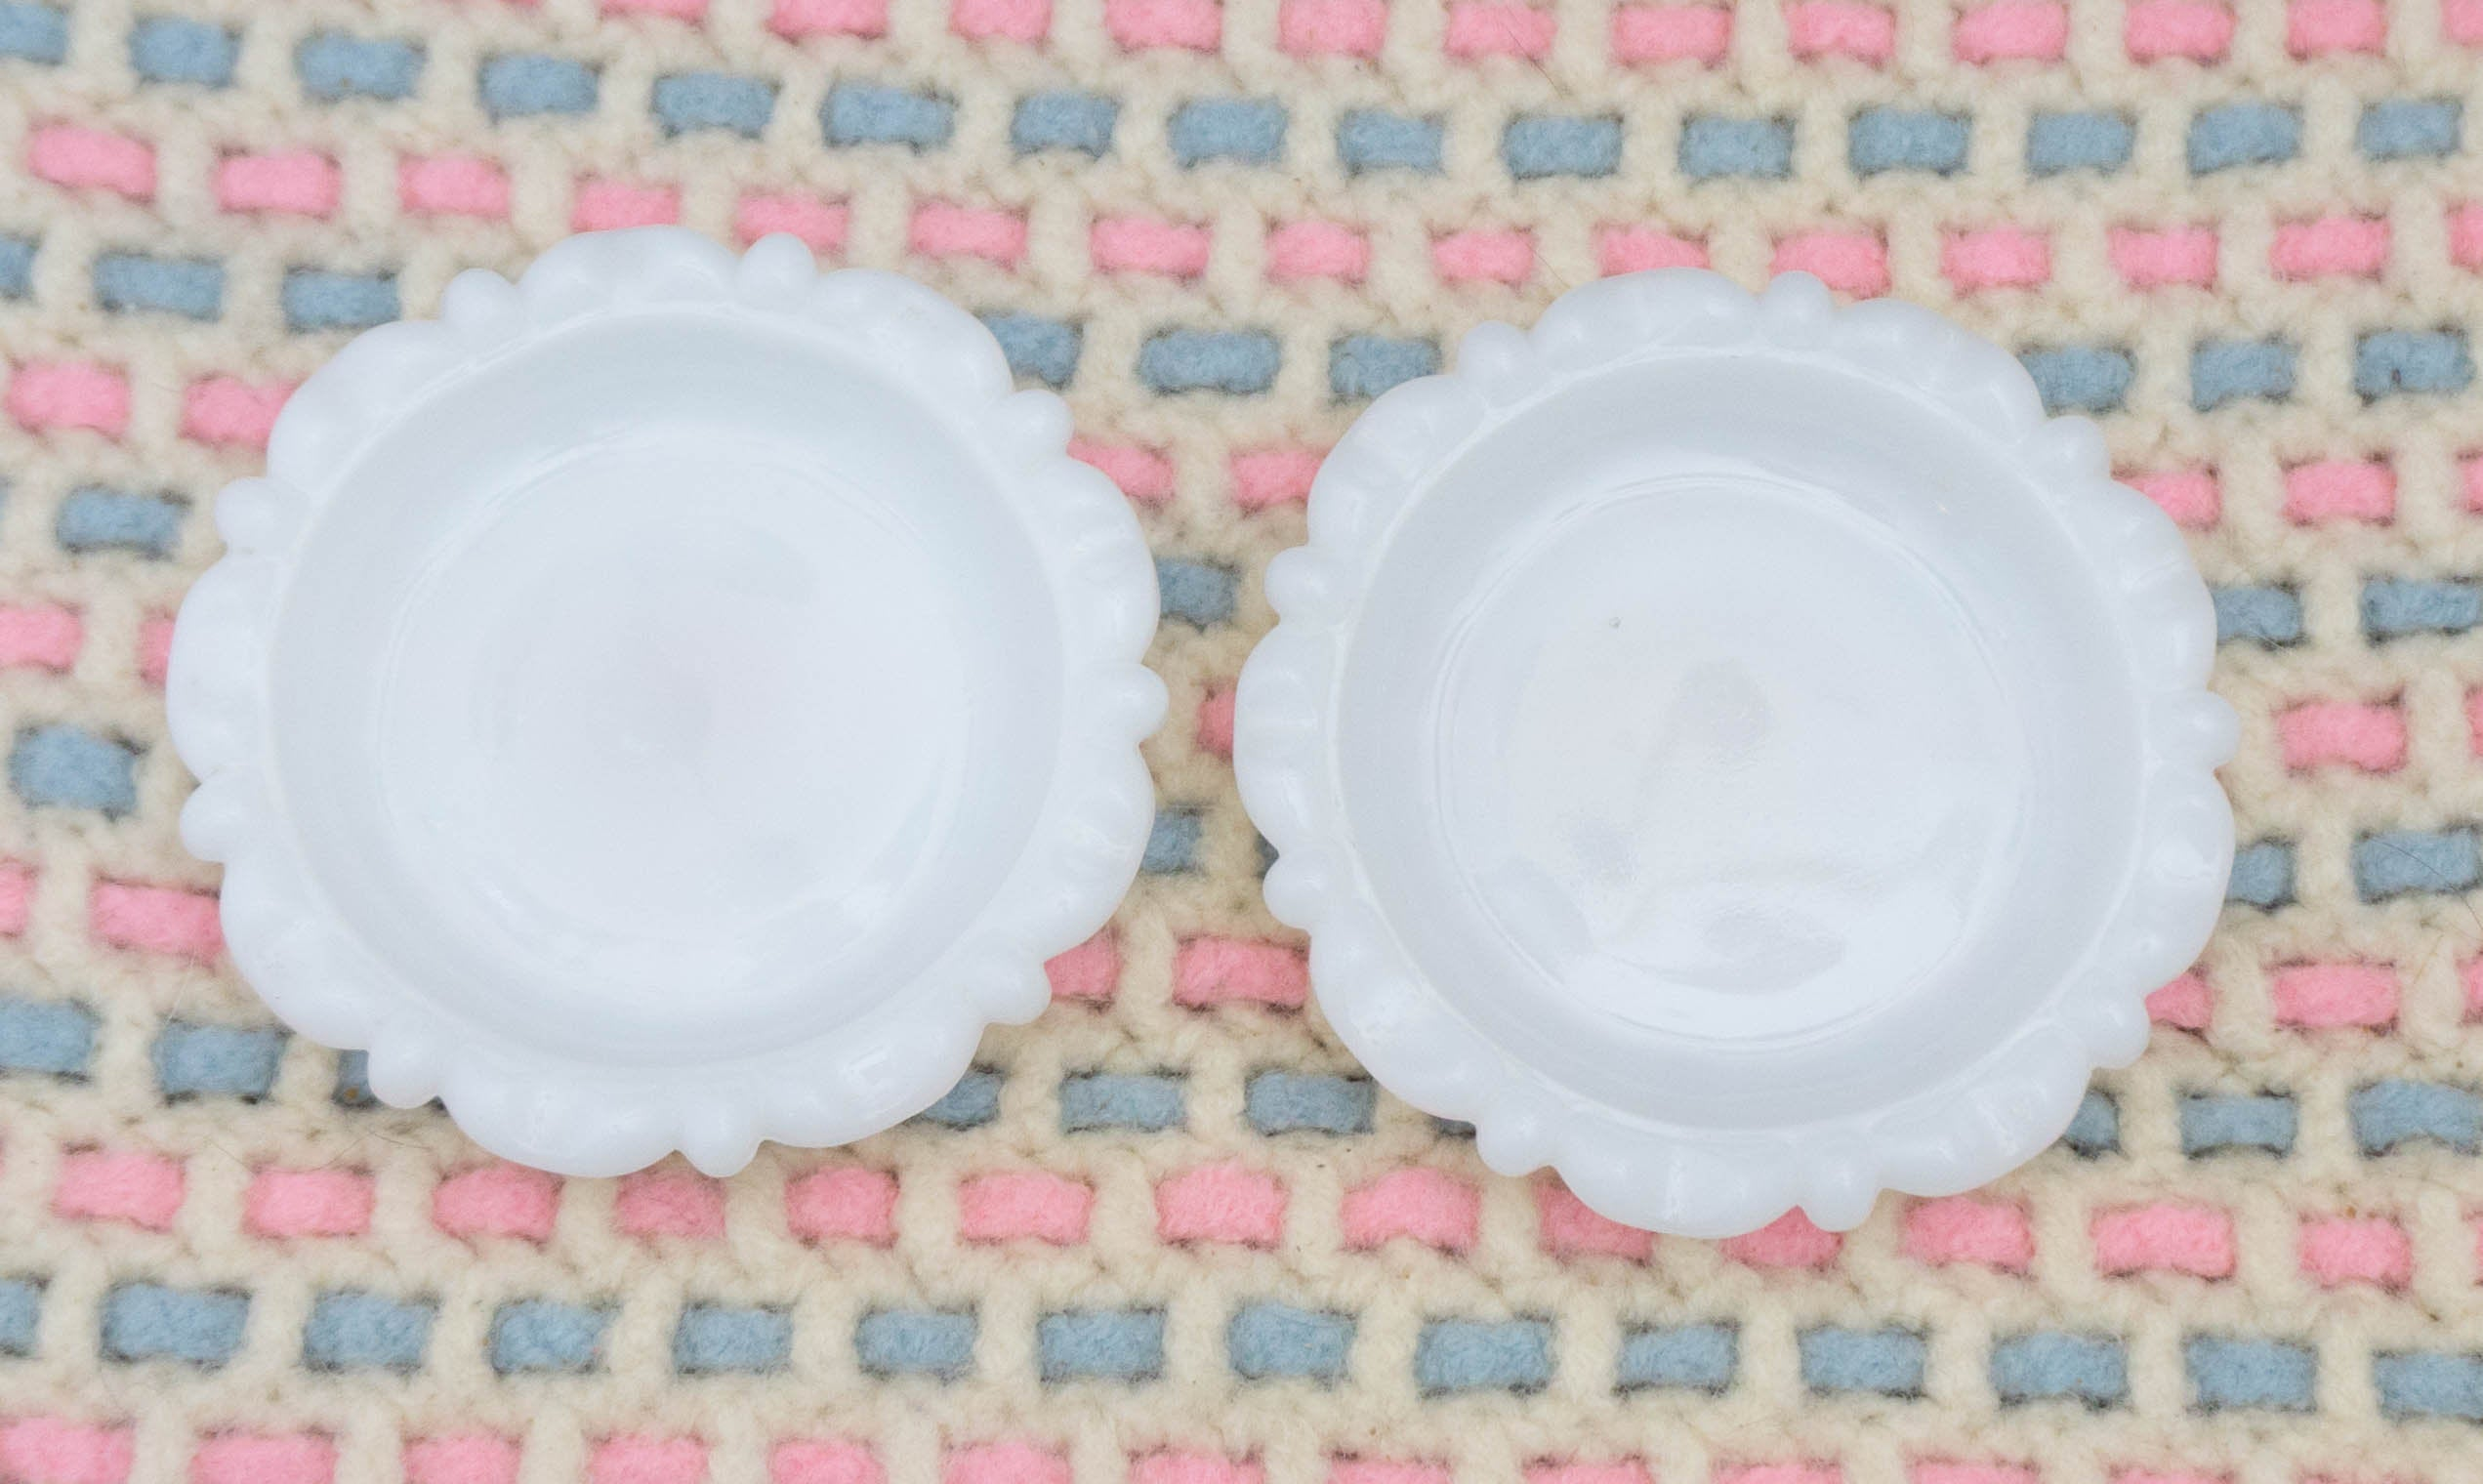 TWO Vintage Milk Glass Personal Size 1940s Ashtrays